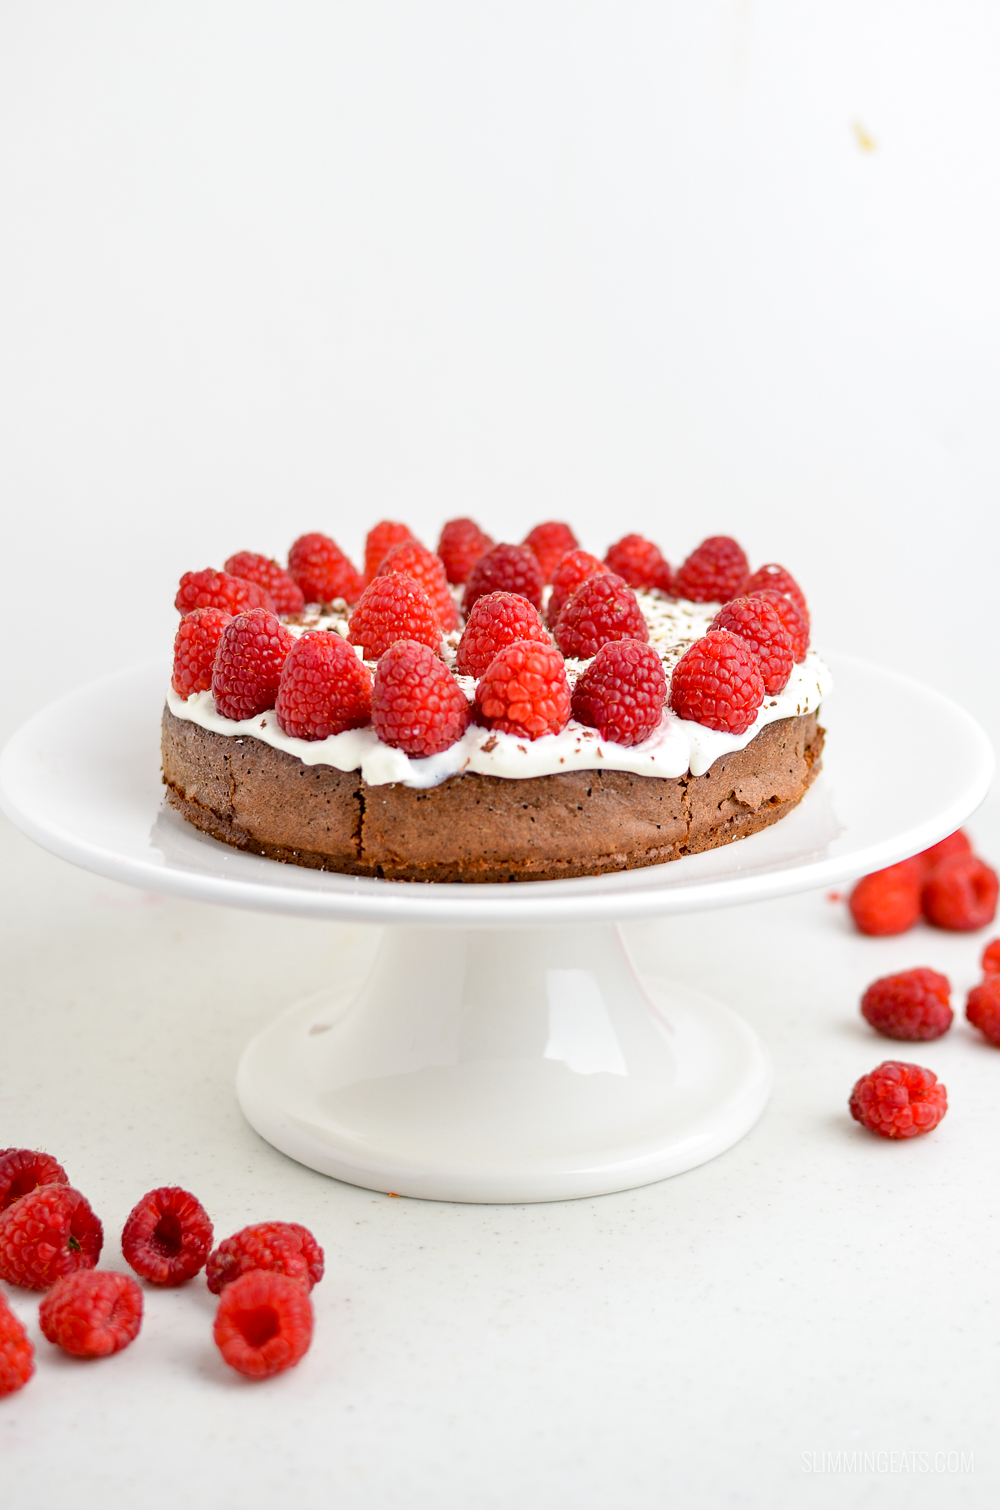 raspberry topped chocolate cake on white cake stand with scattered raspberries